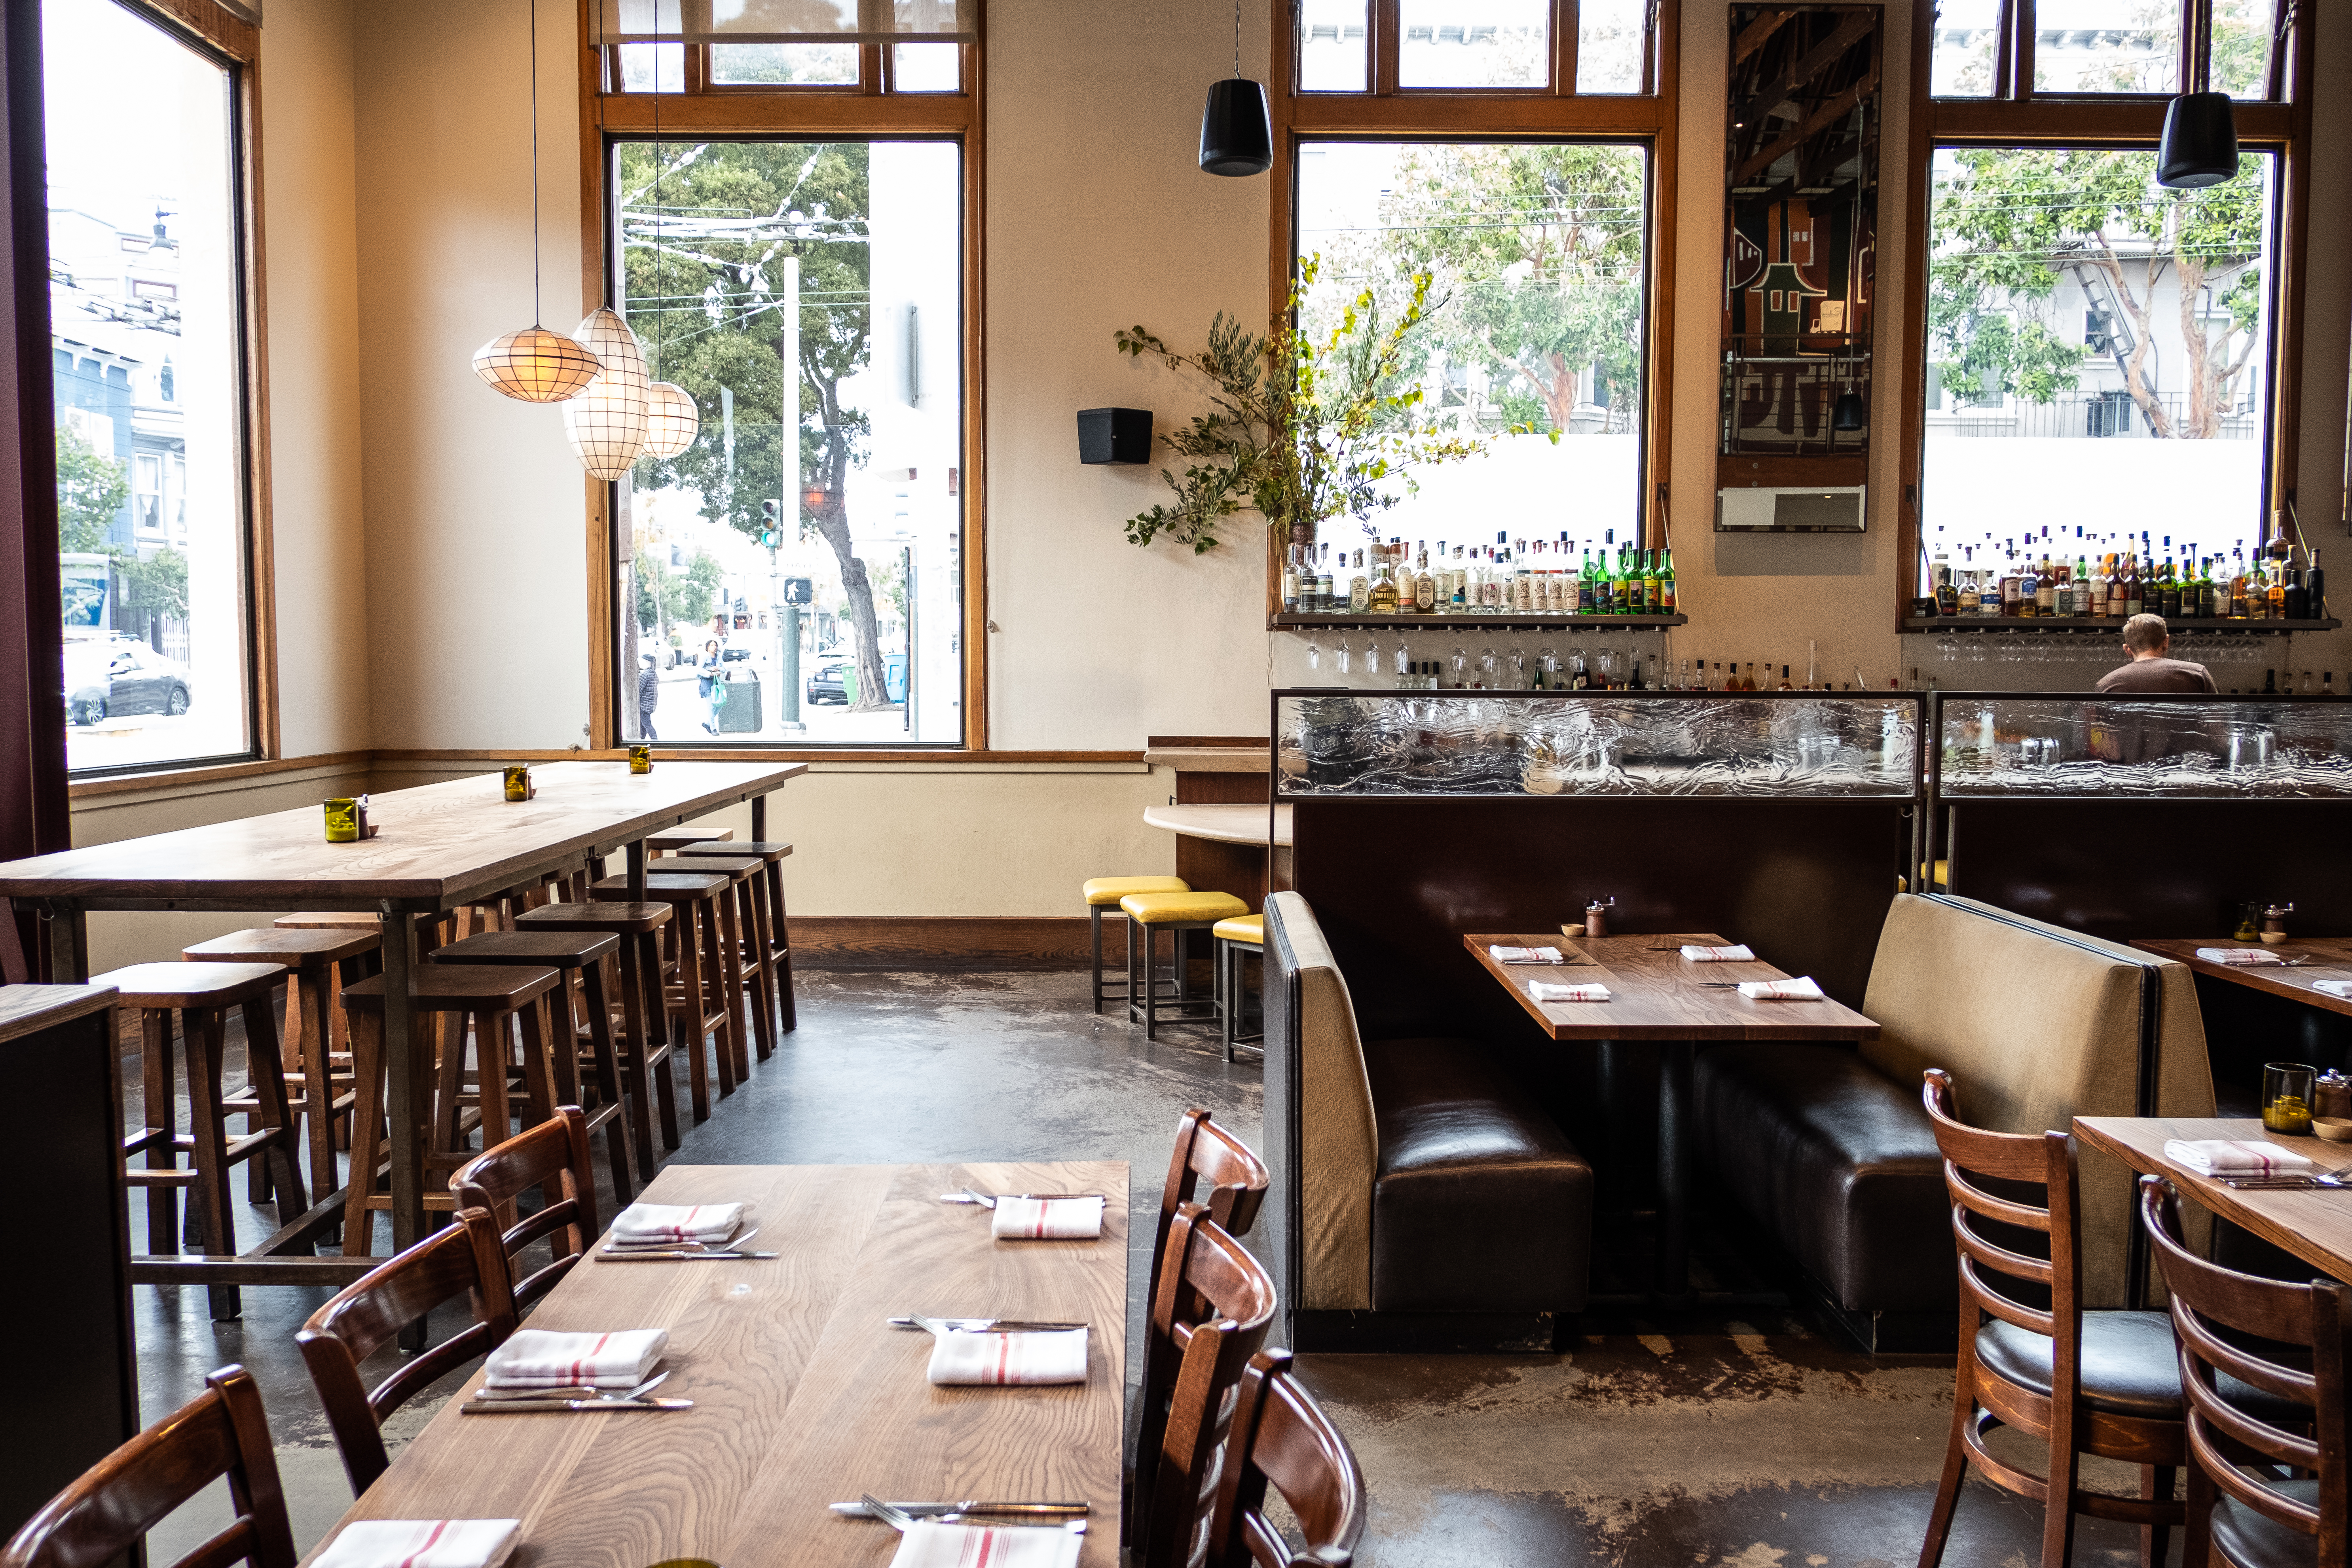 b1614ad17cf Great SF Restaurants For Dining Solo - San Francisco - The Infatuation